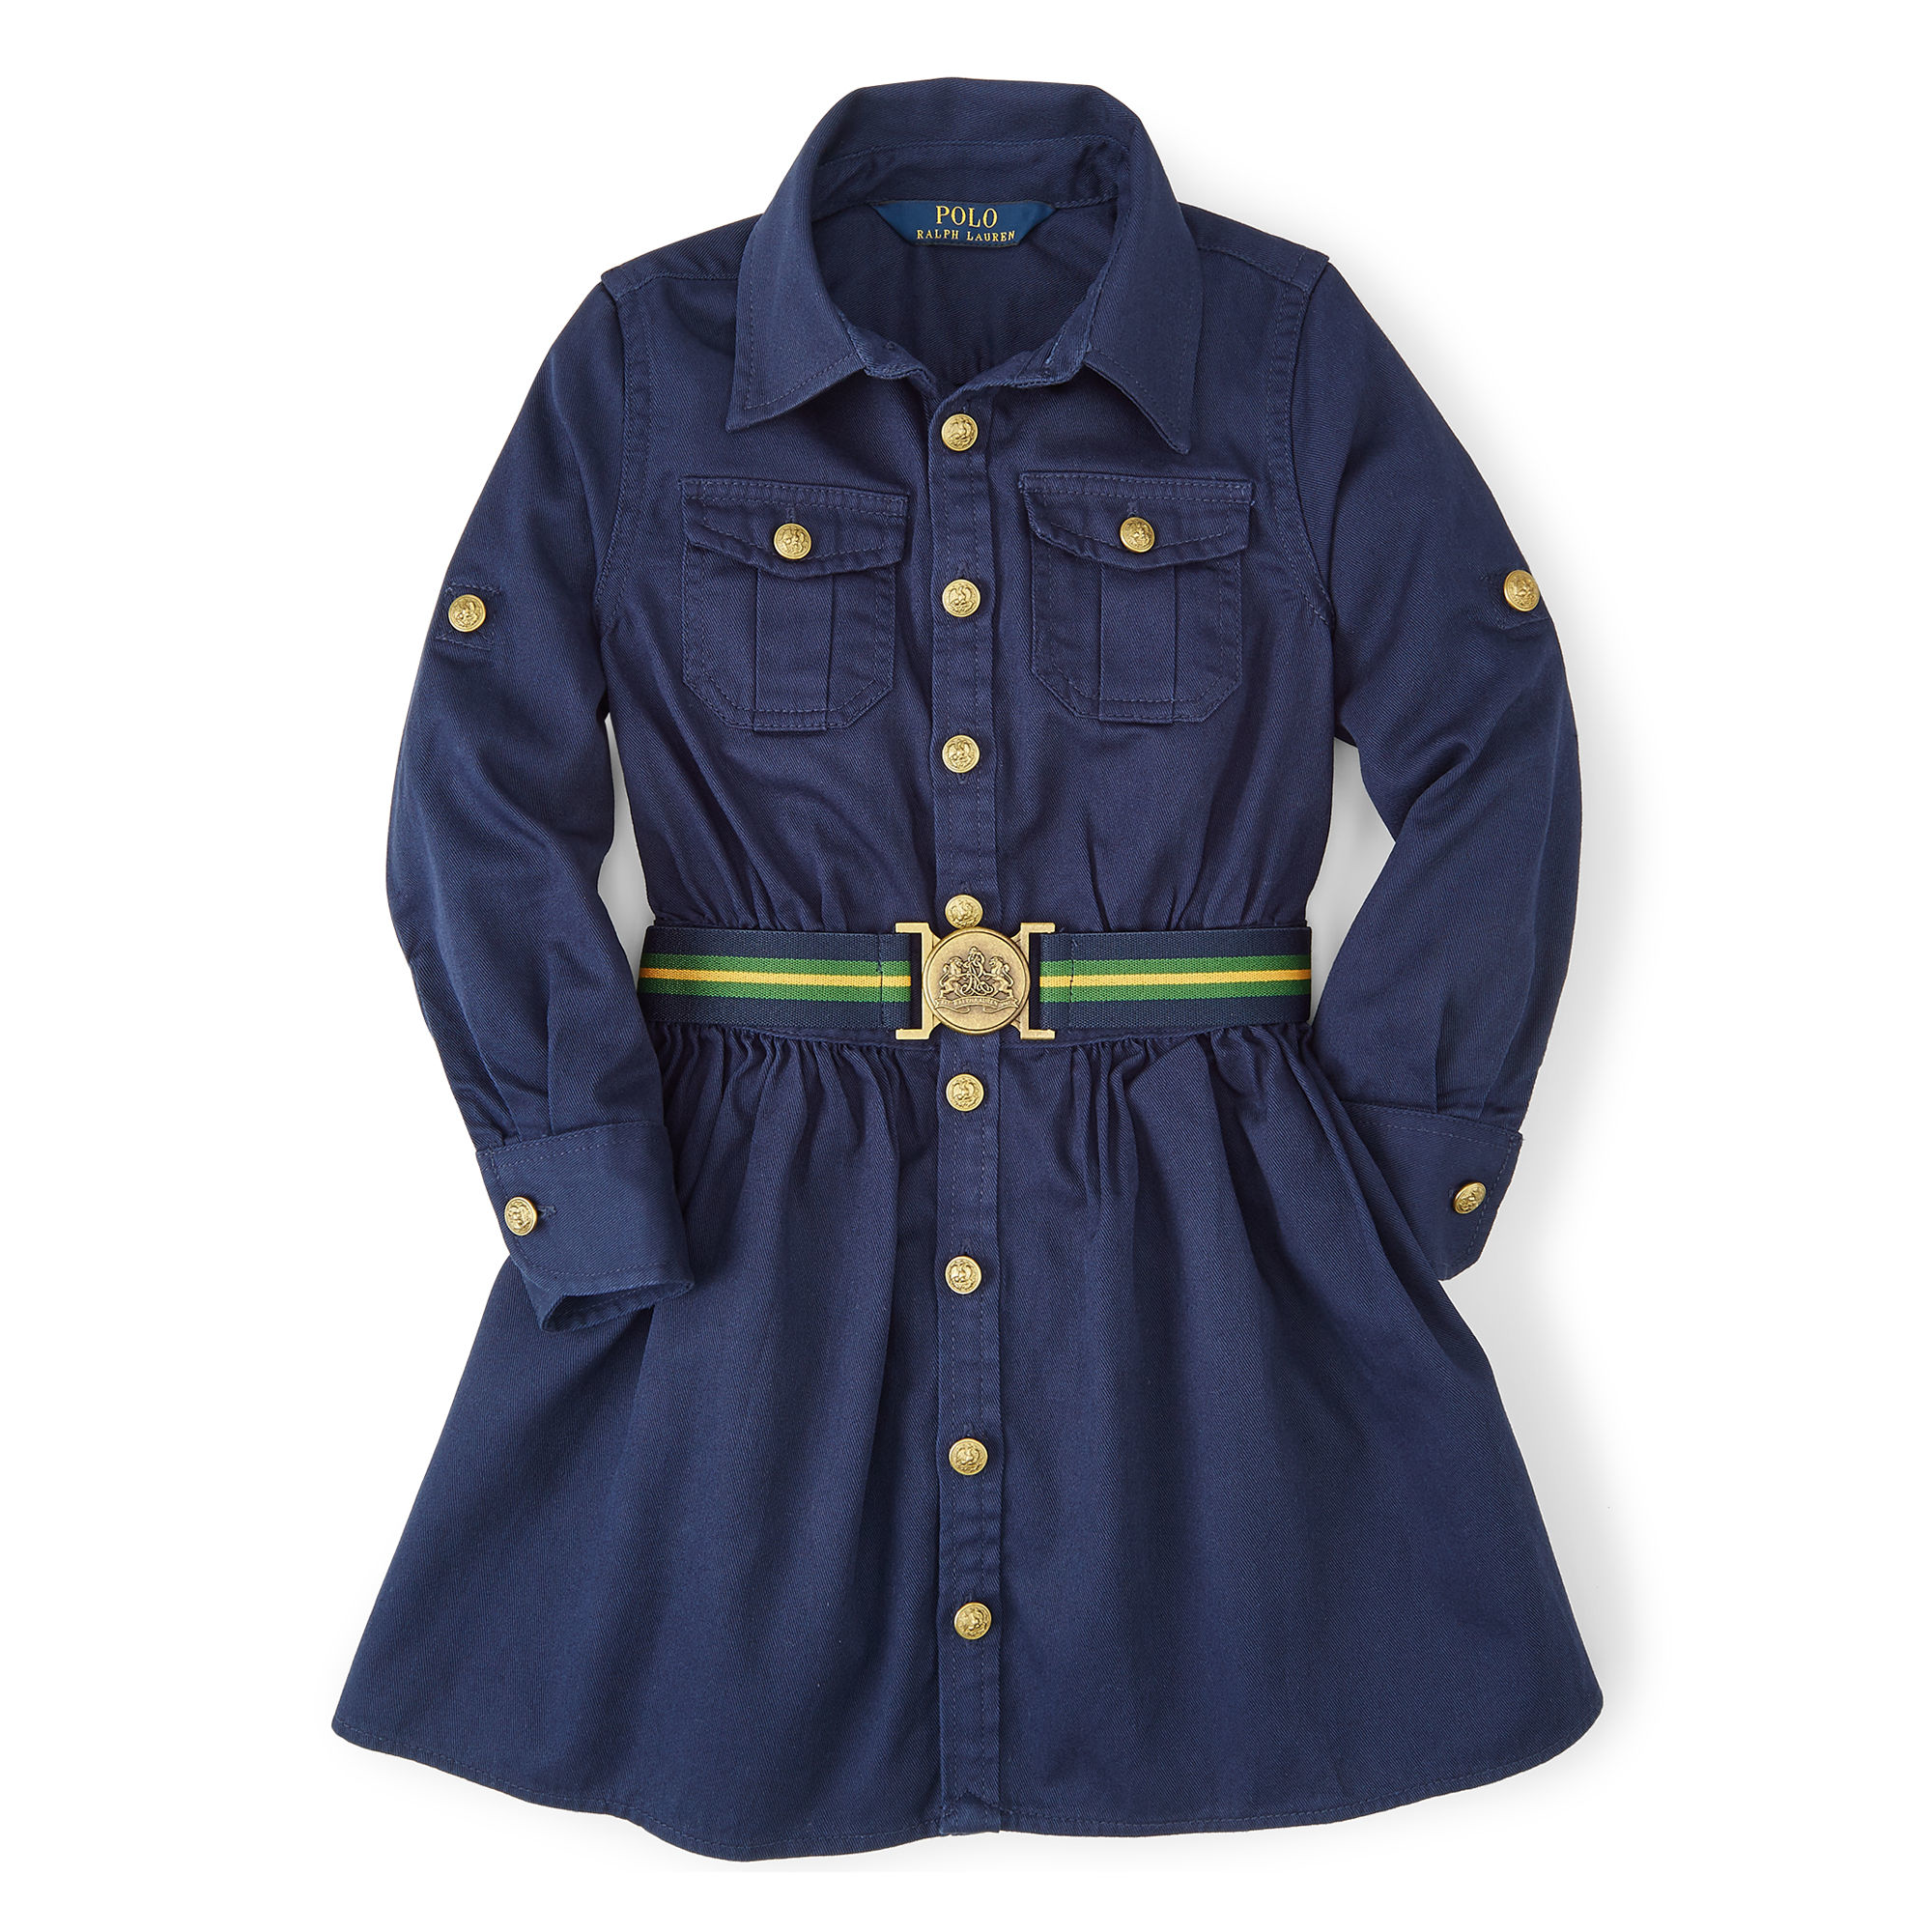 91c666cd4 Ralph Lauren Cotton Chino Shirtdress in Blue - Lyst